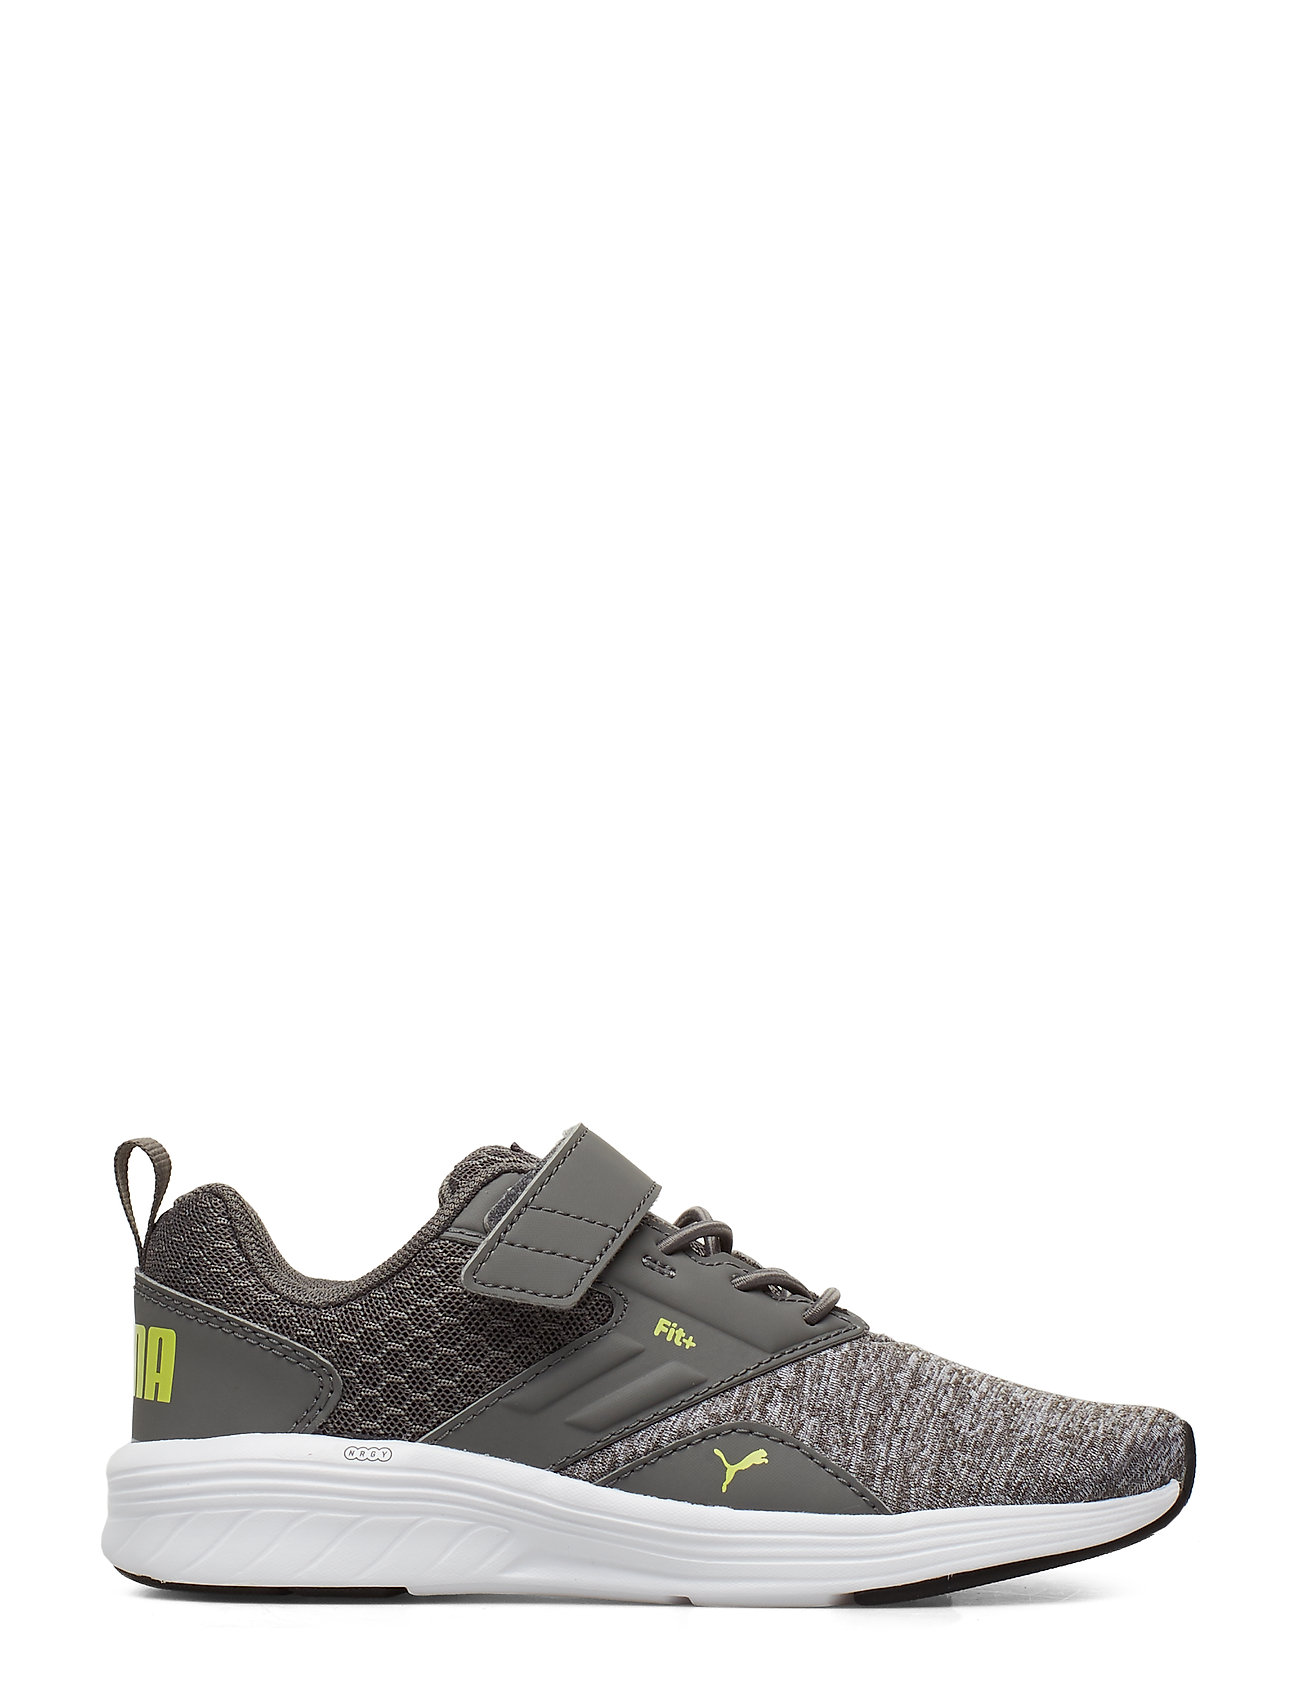 Nrgy Comet V Ps Shoes Sports Shoes Running/training Shoes Grå PUMA